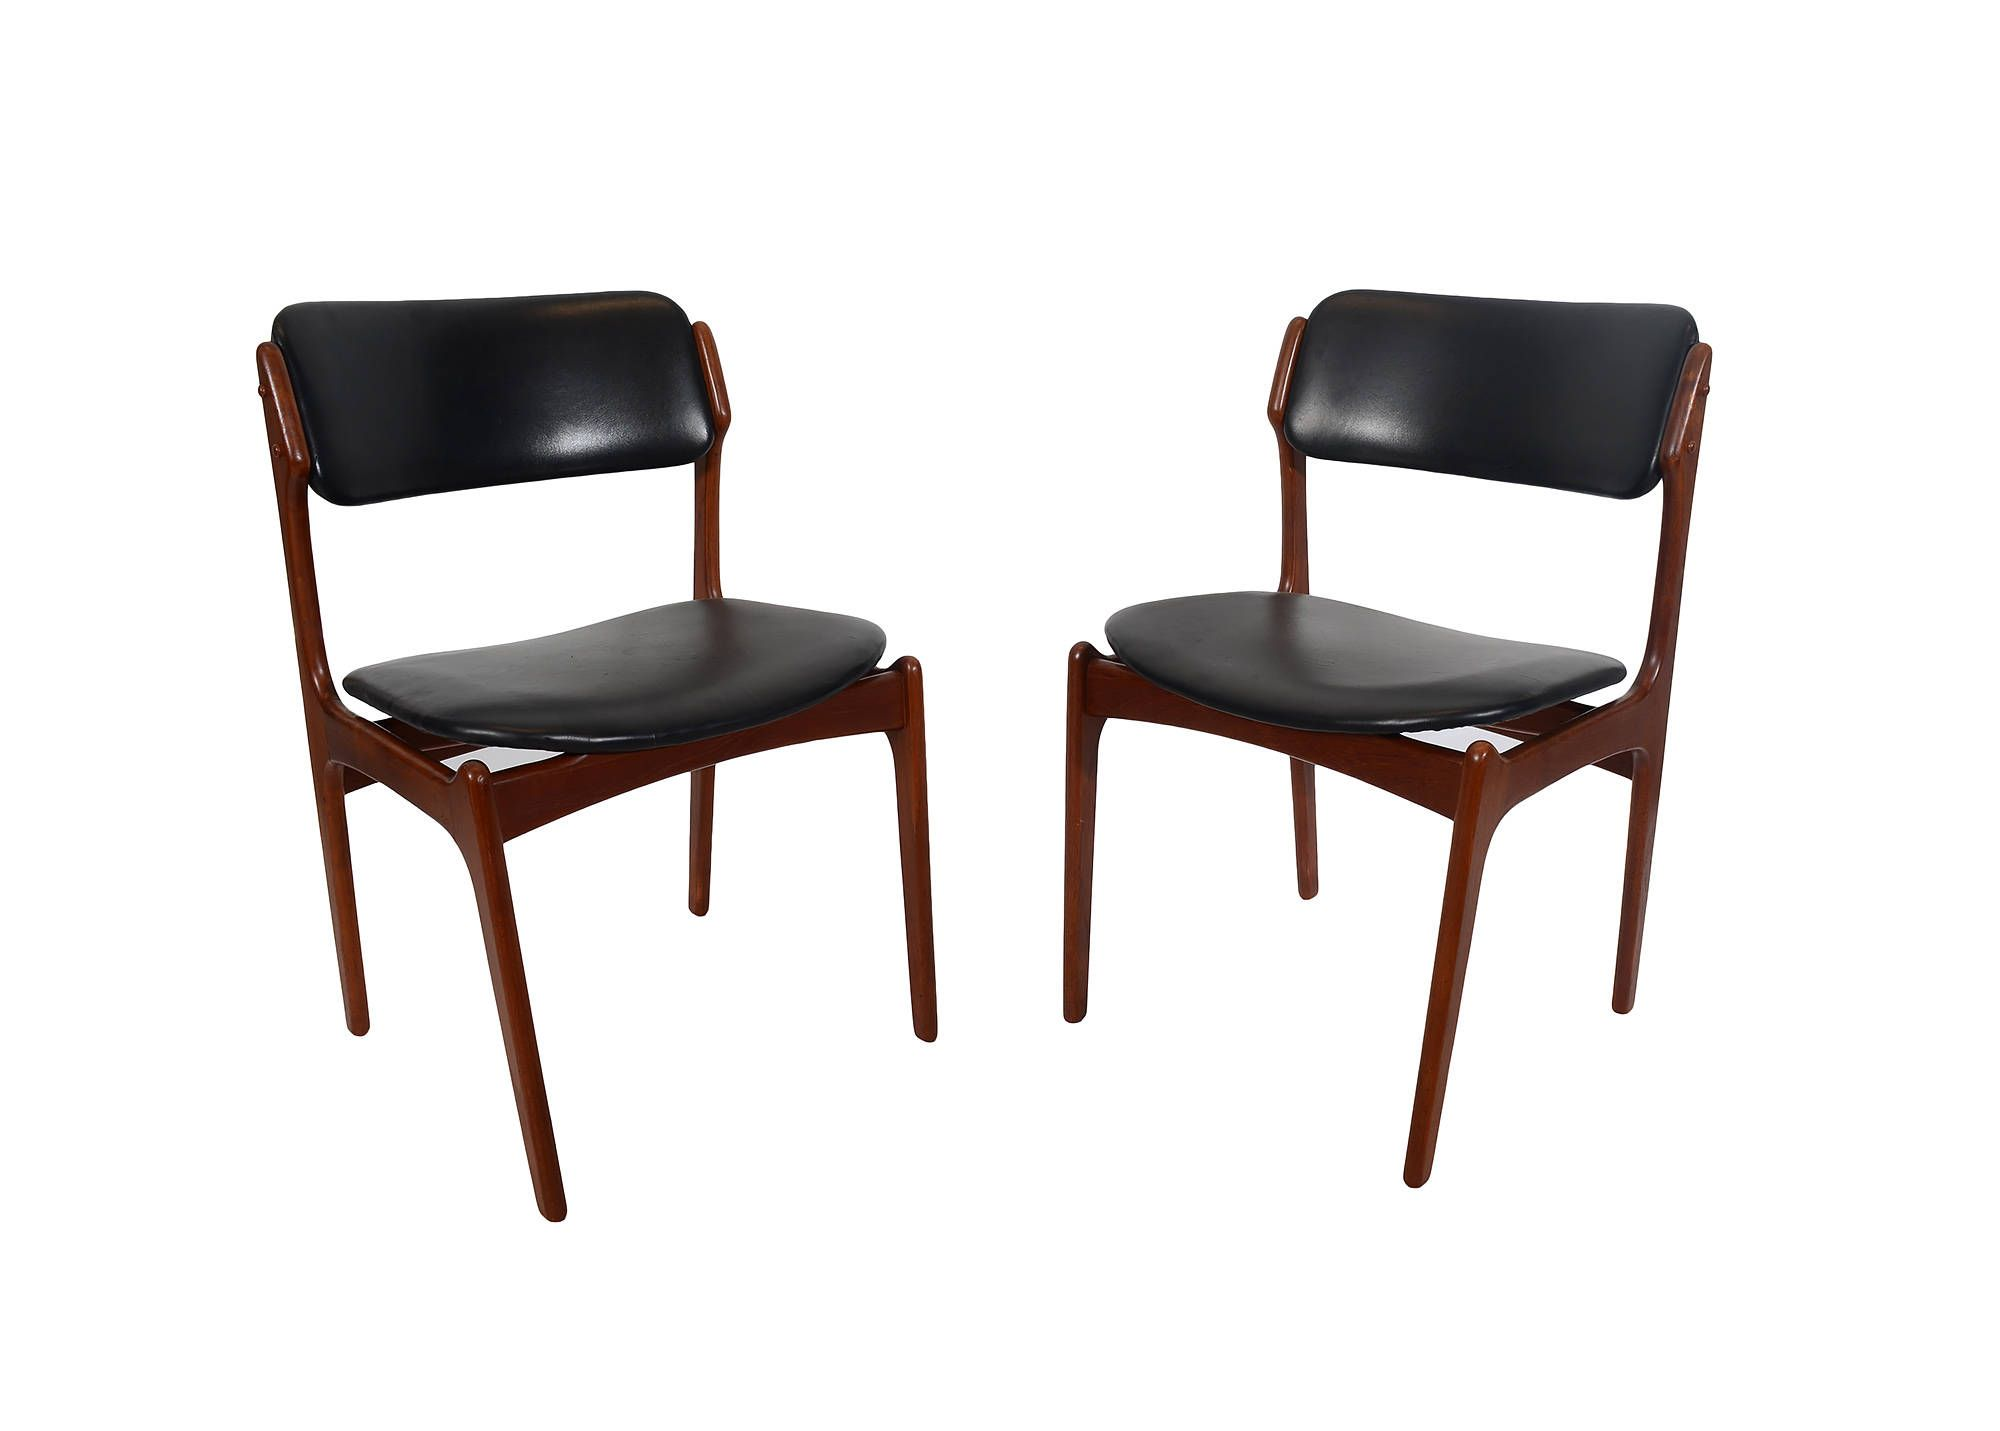 6 Teak Dining Chairs Erik Buch Danish Modern OD Mobler Model 49